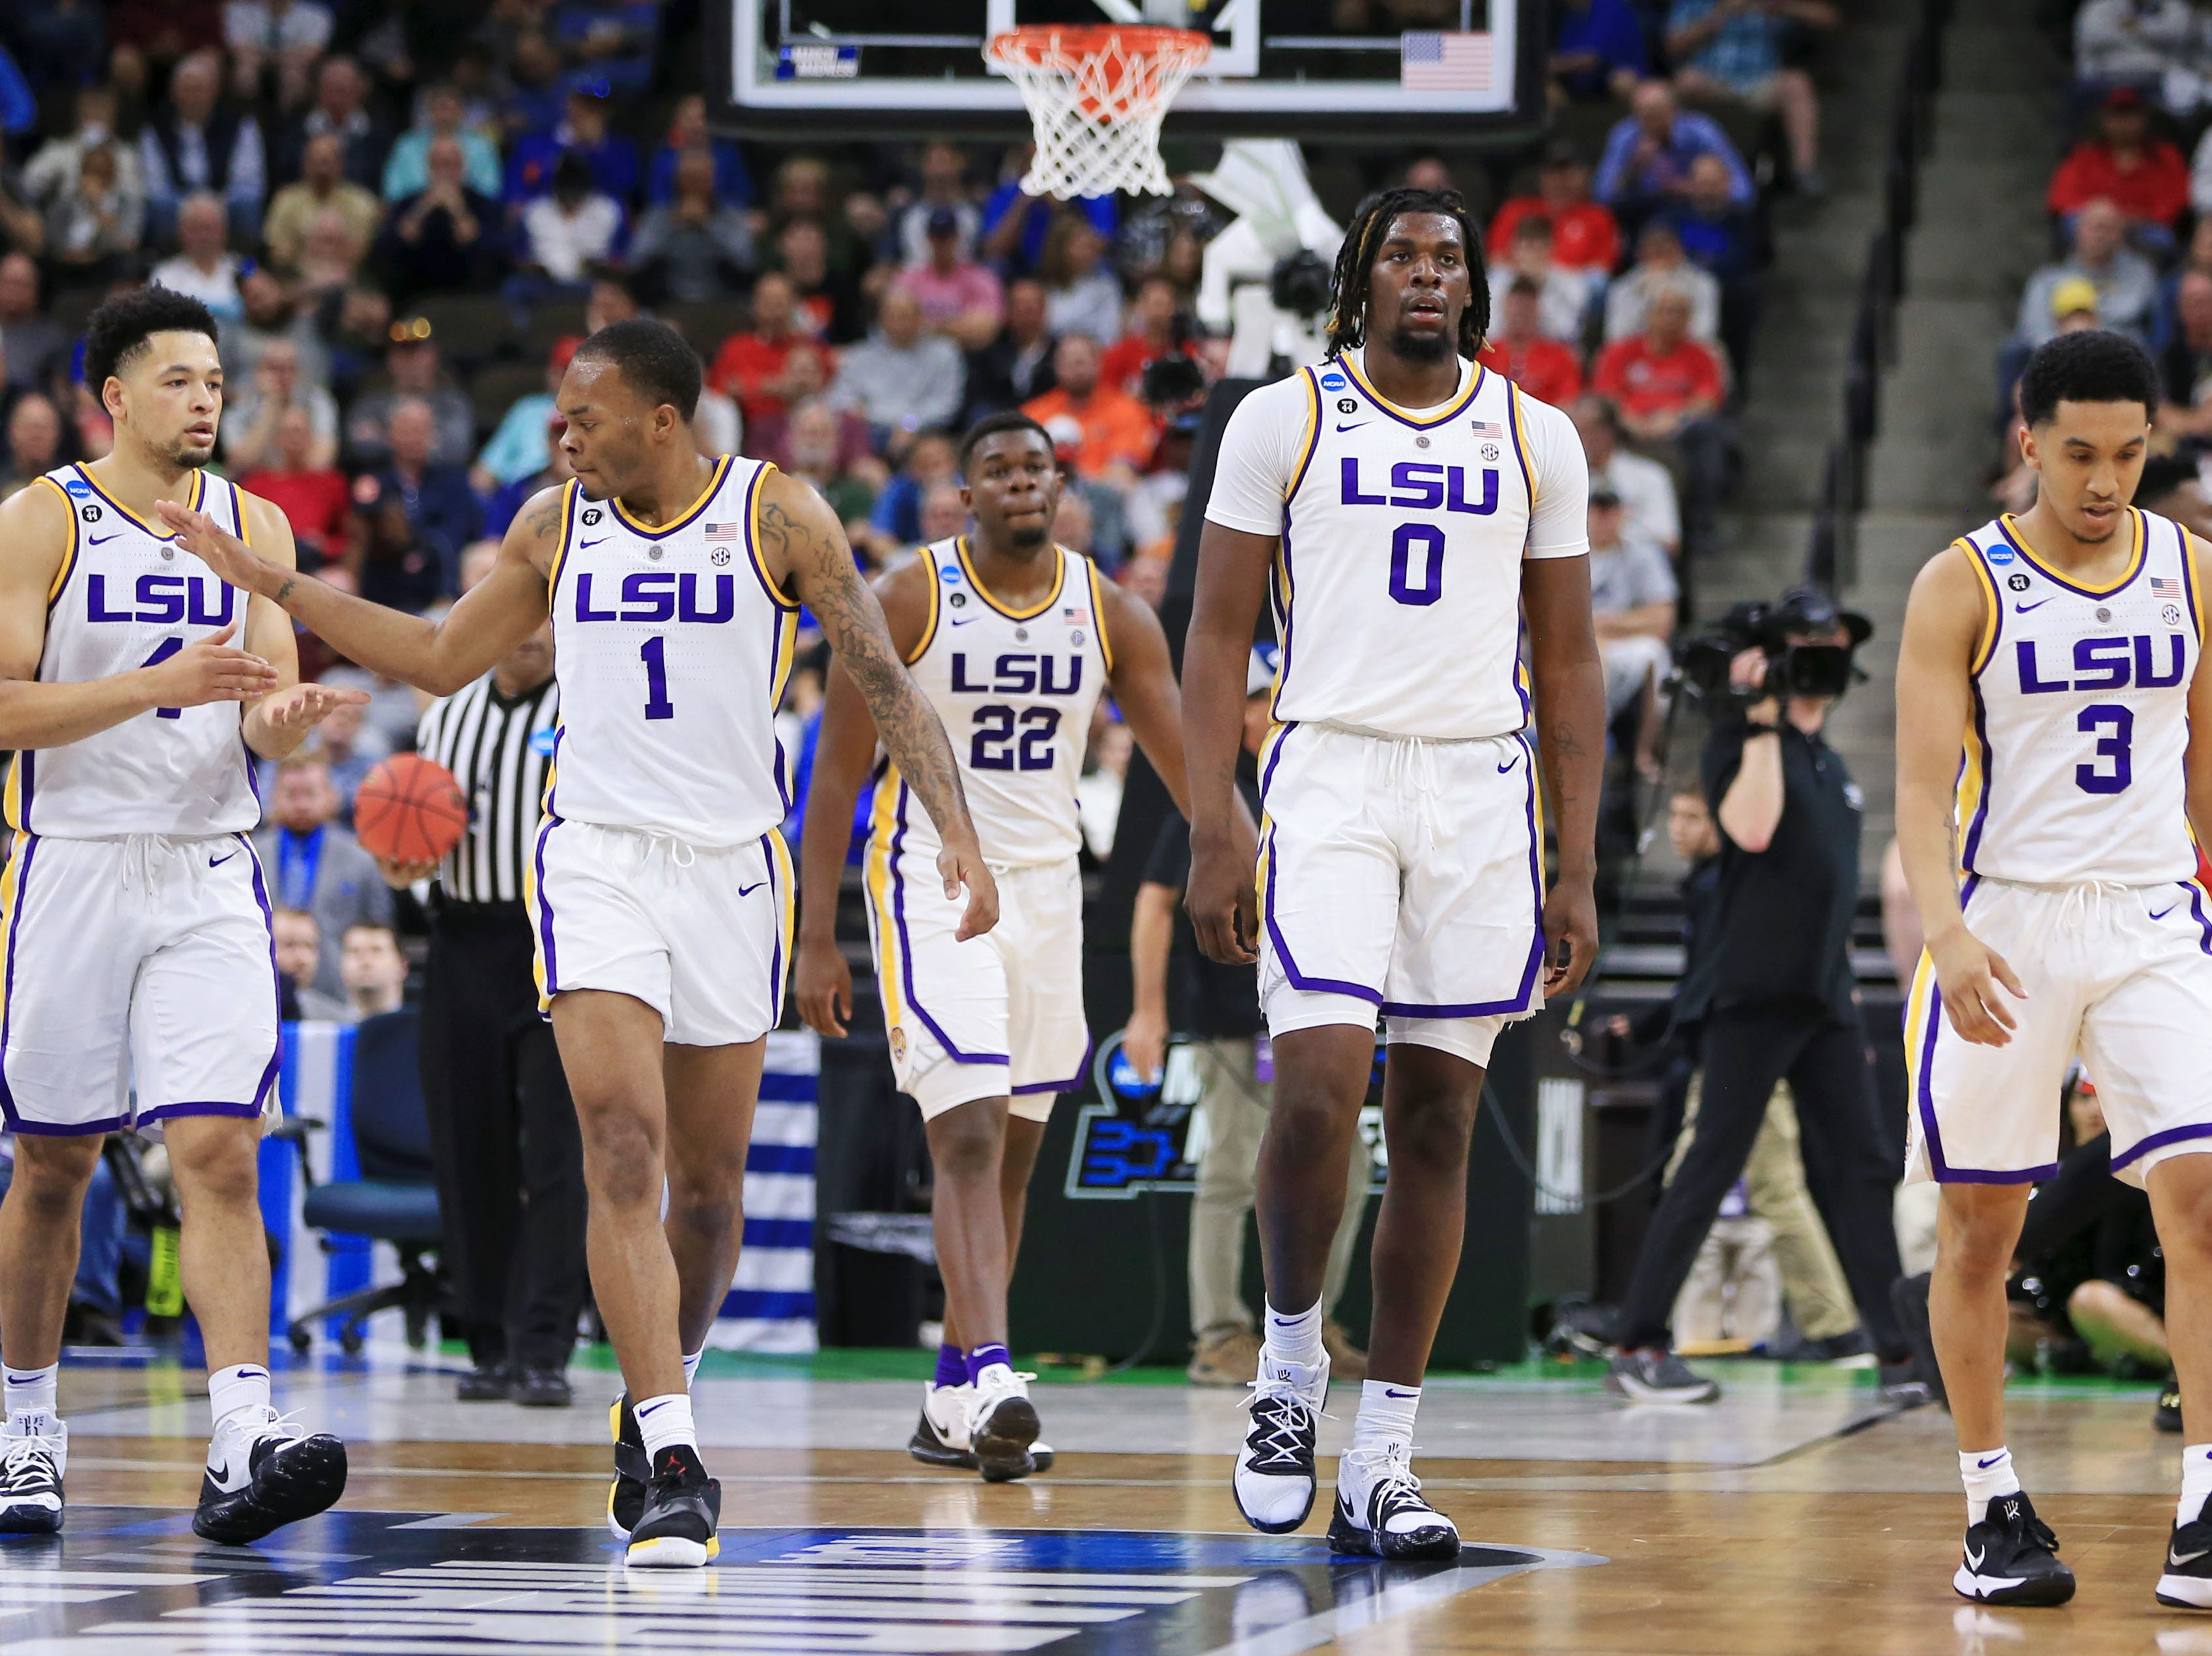 Mar 23, 2019; Jacksonville, FL, USA; LSU Tigers guard Skylar Mays (4) and guard Javonte Smart (1) high five as the team walks off the court during the first half of their game against the Maryland Terrapins in the second round of the 2019 NCAA Tournament at Jacksonville Veterans Memorial Arena. Mandatory Credit: Matt Stamey-USA TODAY Sports